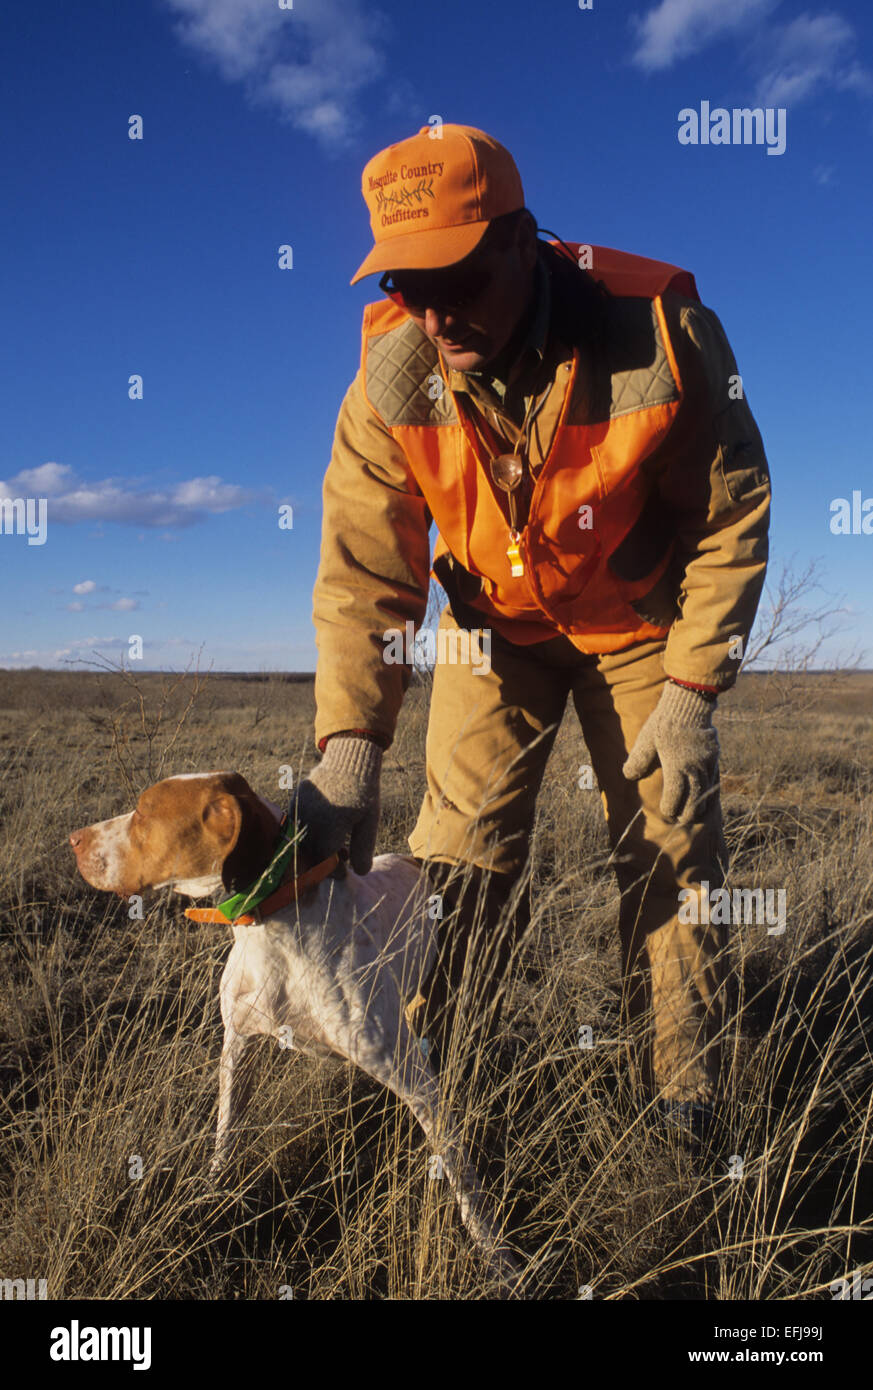 A hunter with his English Pointer dog while quail hunting near Guthrie Texas - Stock Image